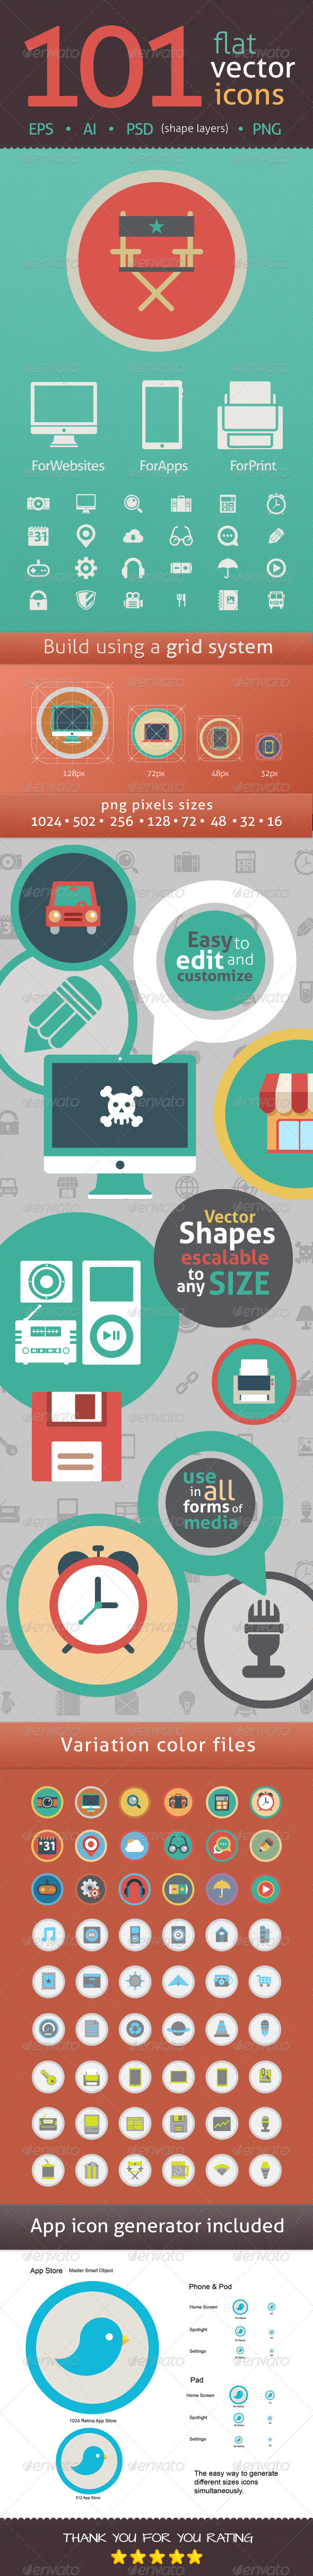 101 Flat Icons in Vector Format and Shape Layers - Icons